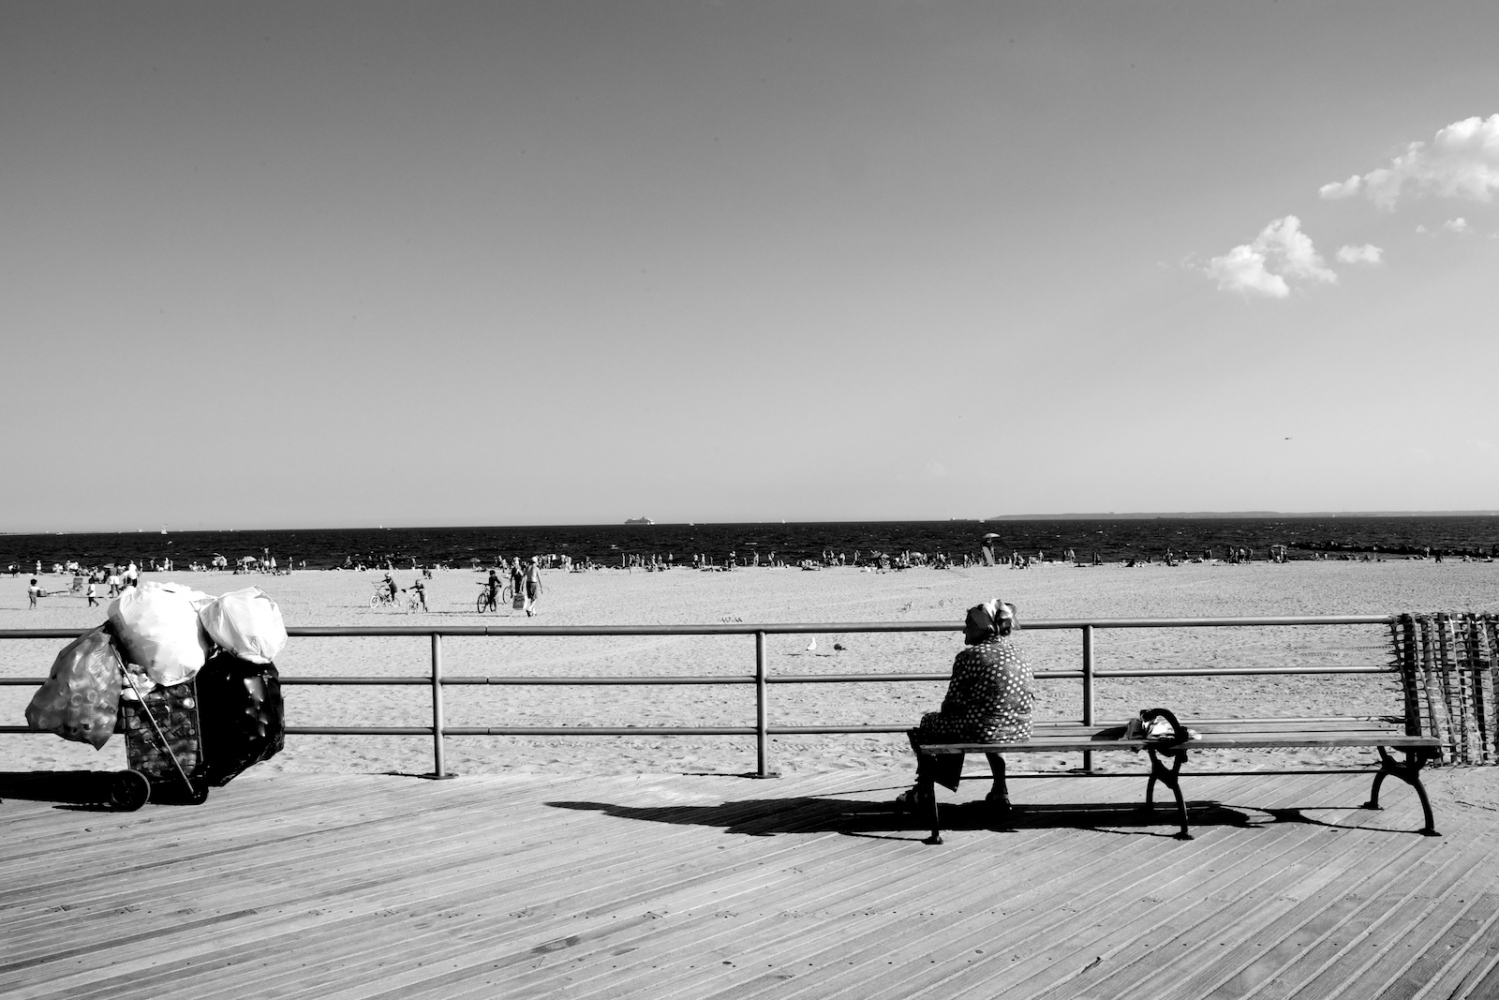 Bag Lady on Boardwalk. Coney Island, NY, Summer 2011